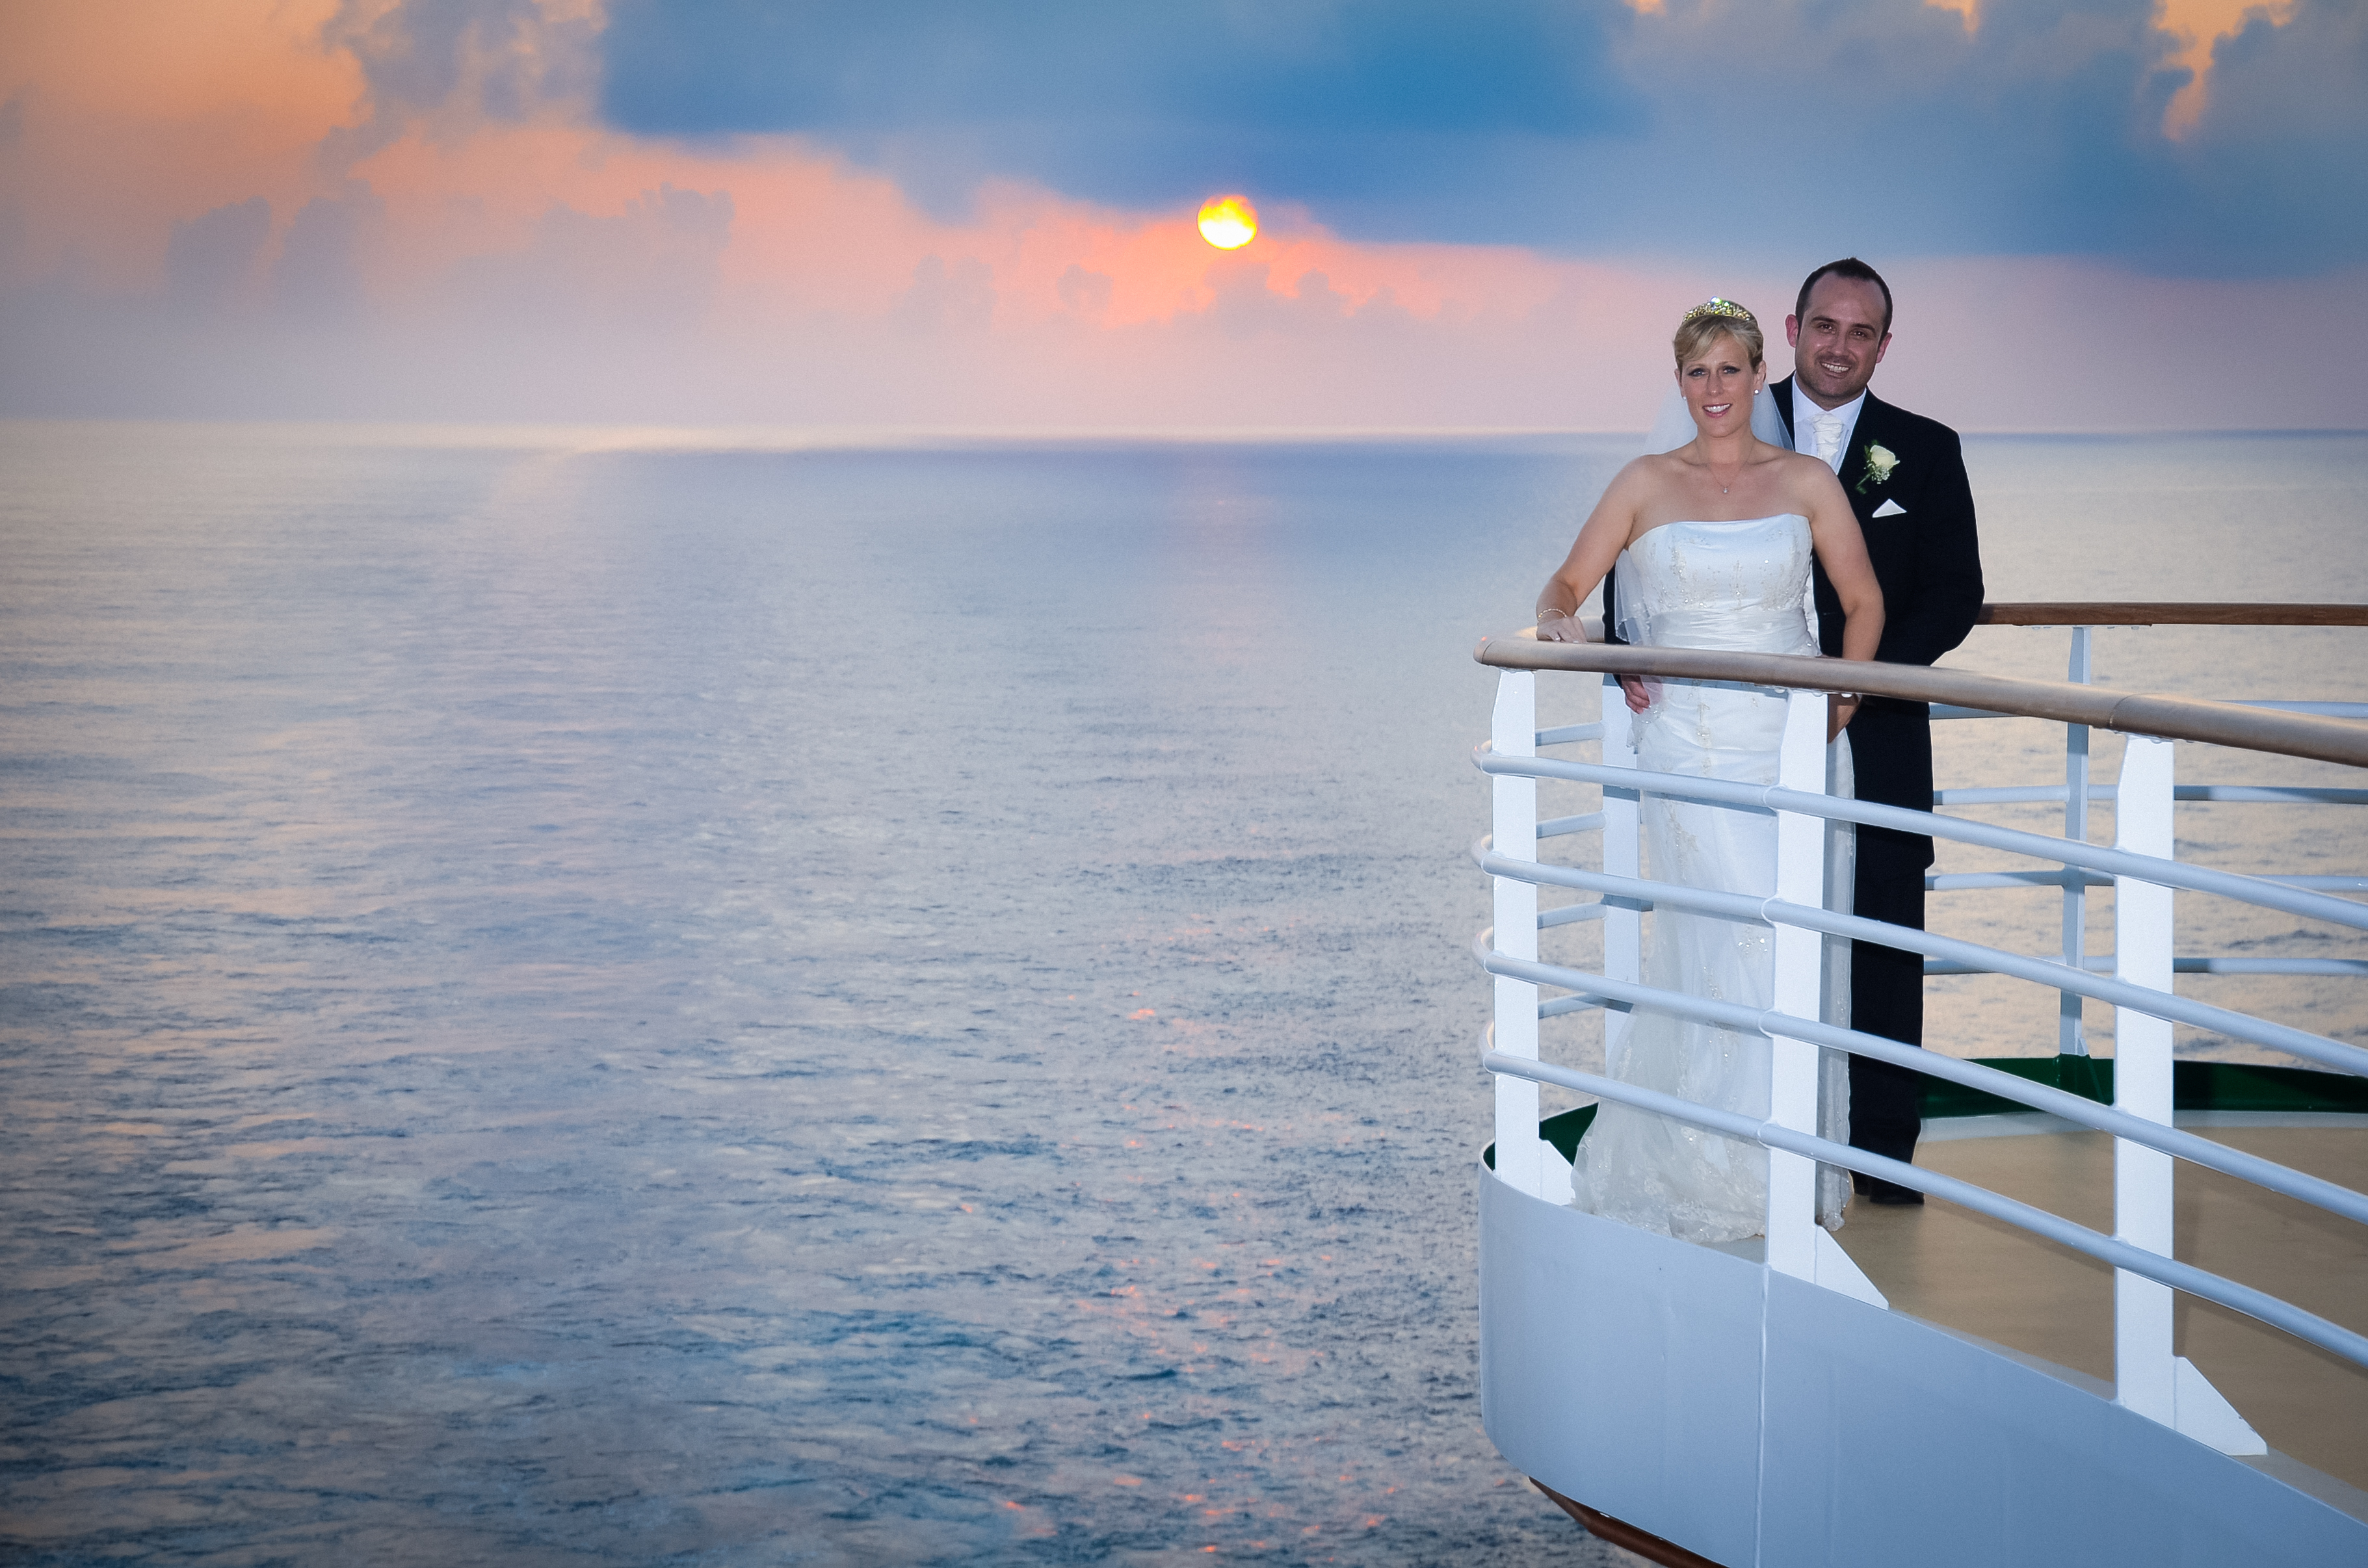 Getting Married On A Cruise Cruise Select - Getting married on a cruise ship